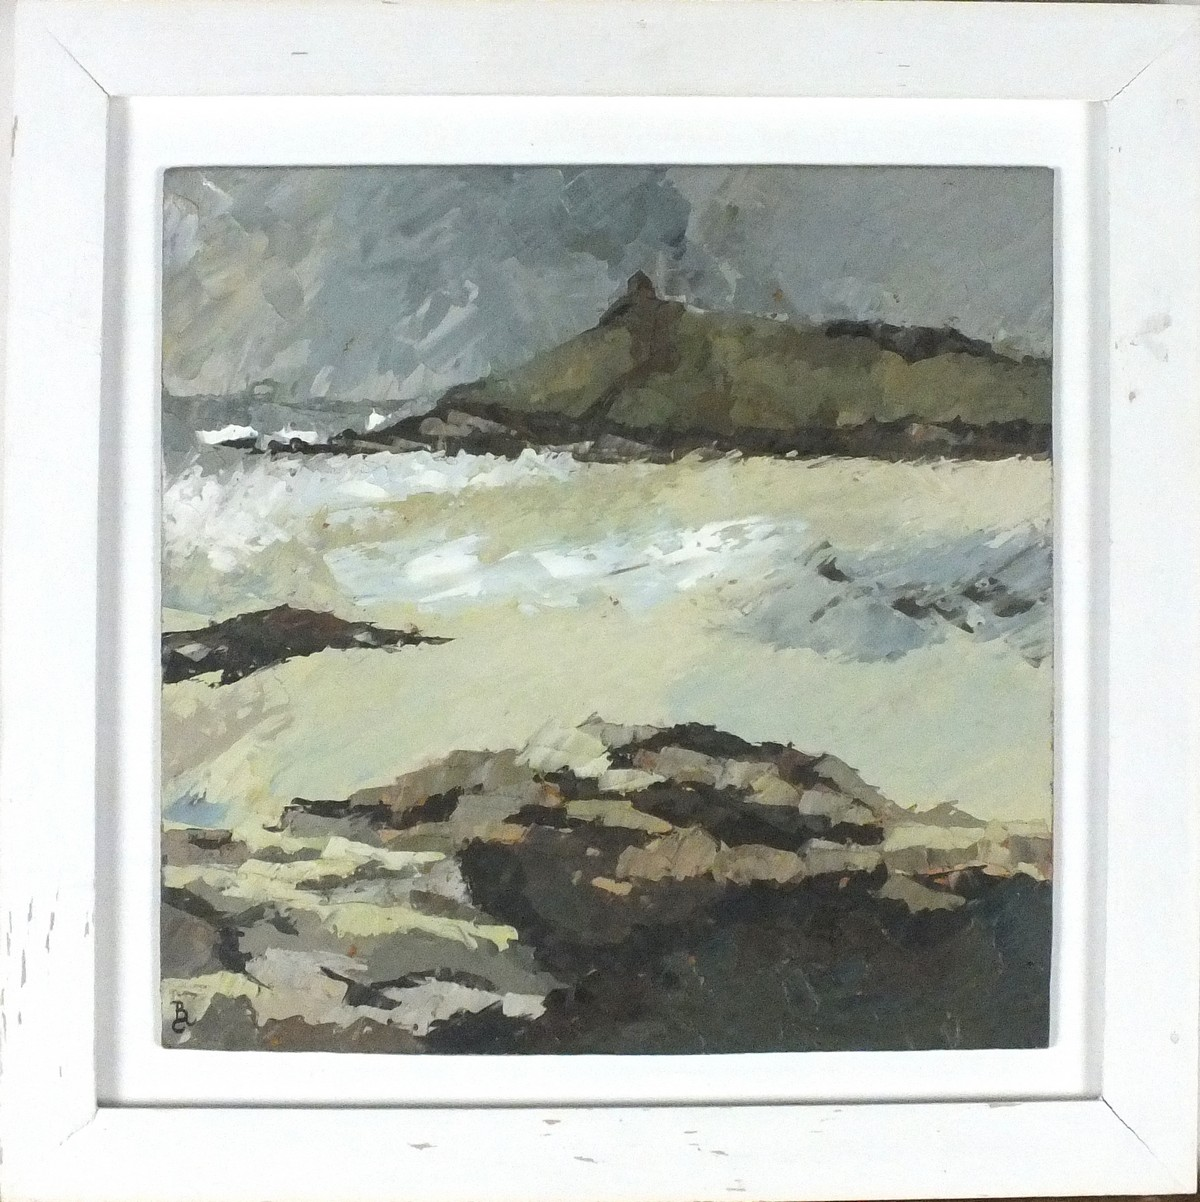 Lot 58 - * David BEER (b.1943), Acrylic on board, 'The Island' - St Ives, Inscribed on label, Signed with